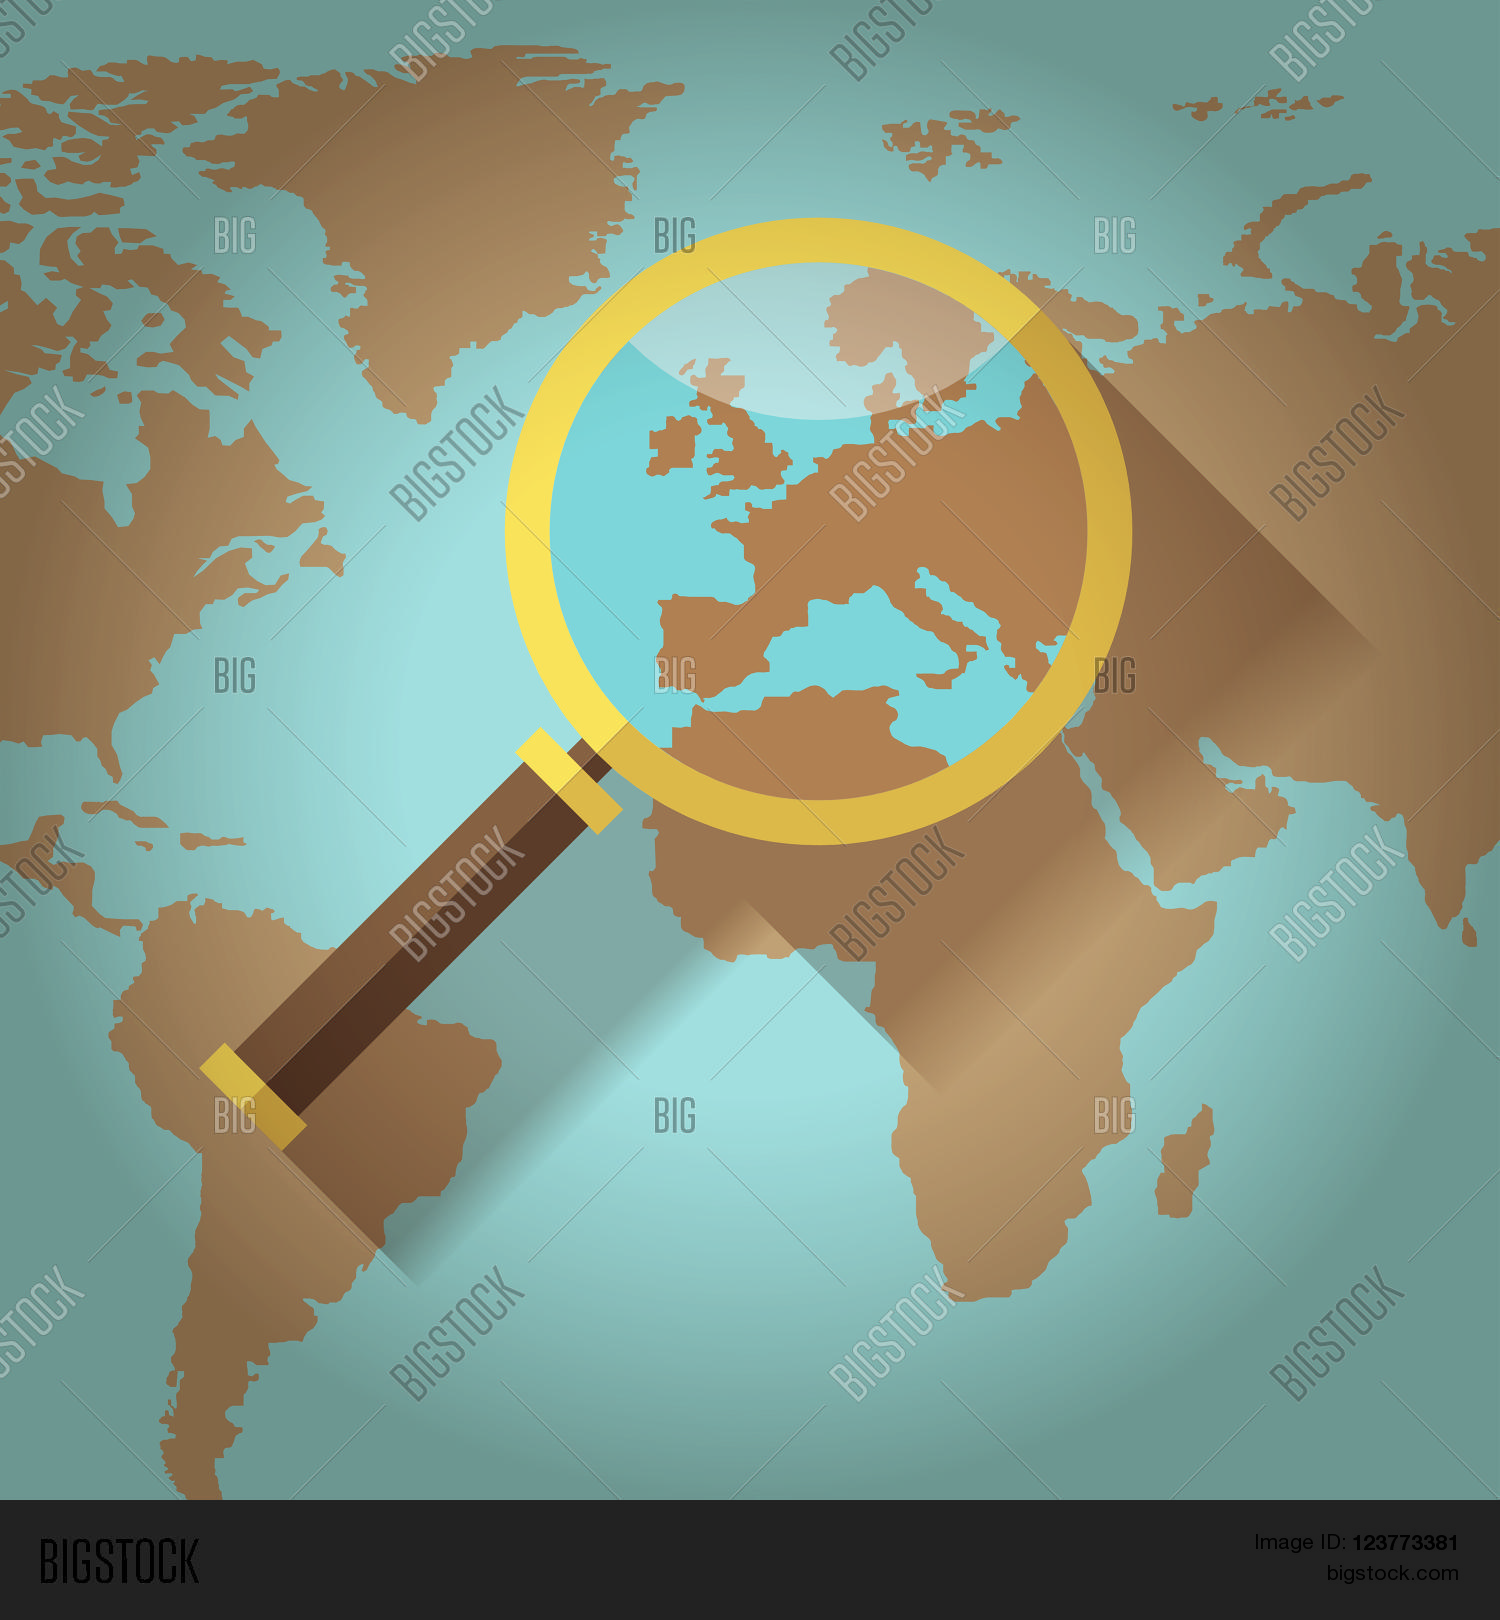 World map countries europe vector photo bigstock world map countries with europe magnifying glass gumiabroncs Choice Image